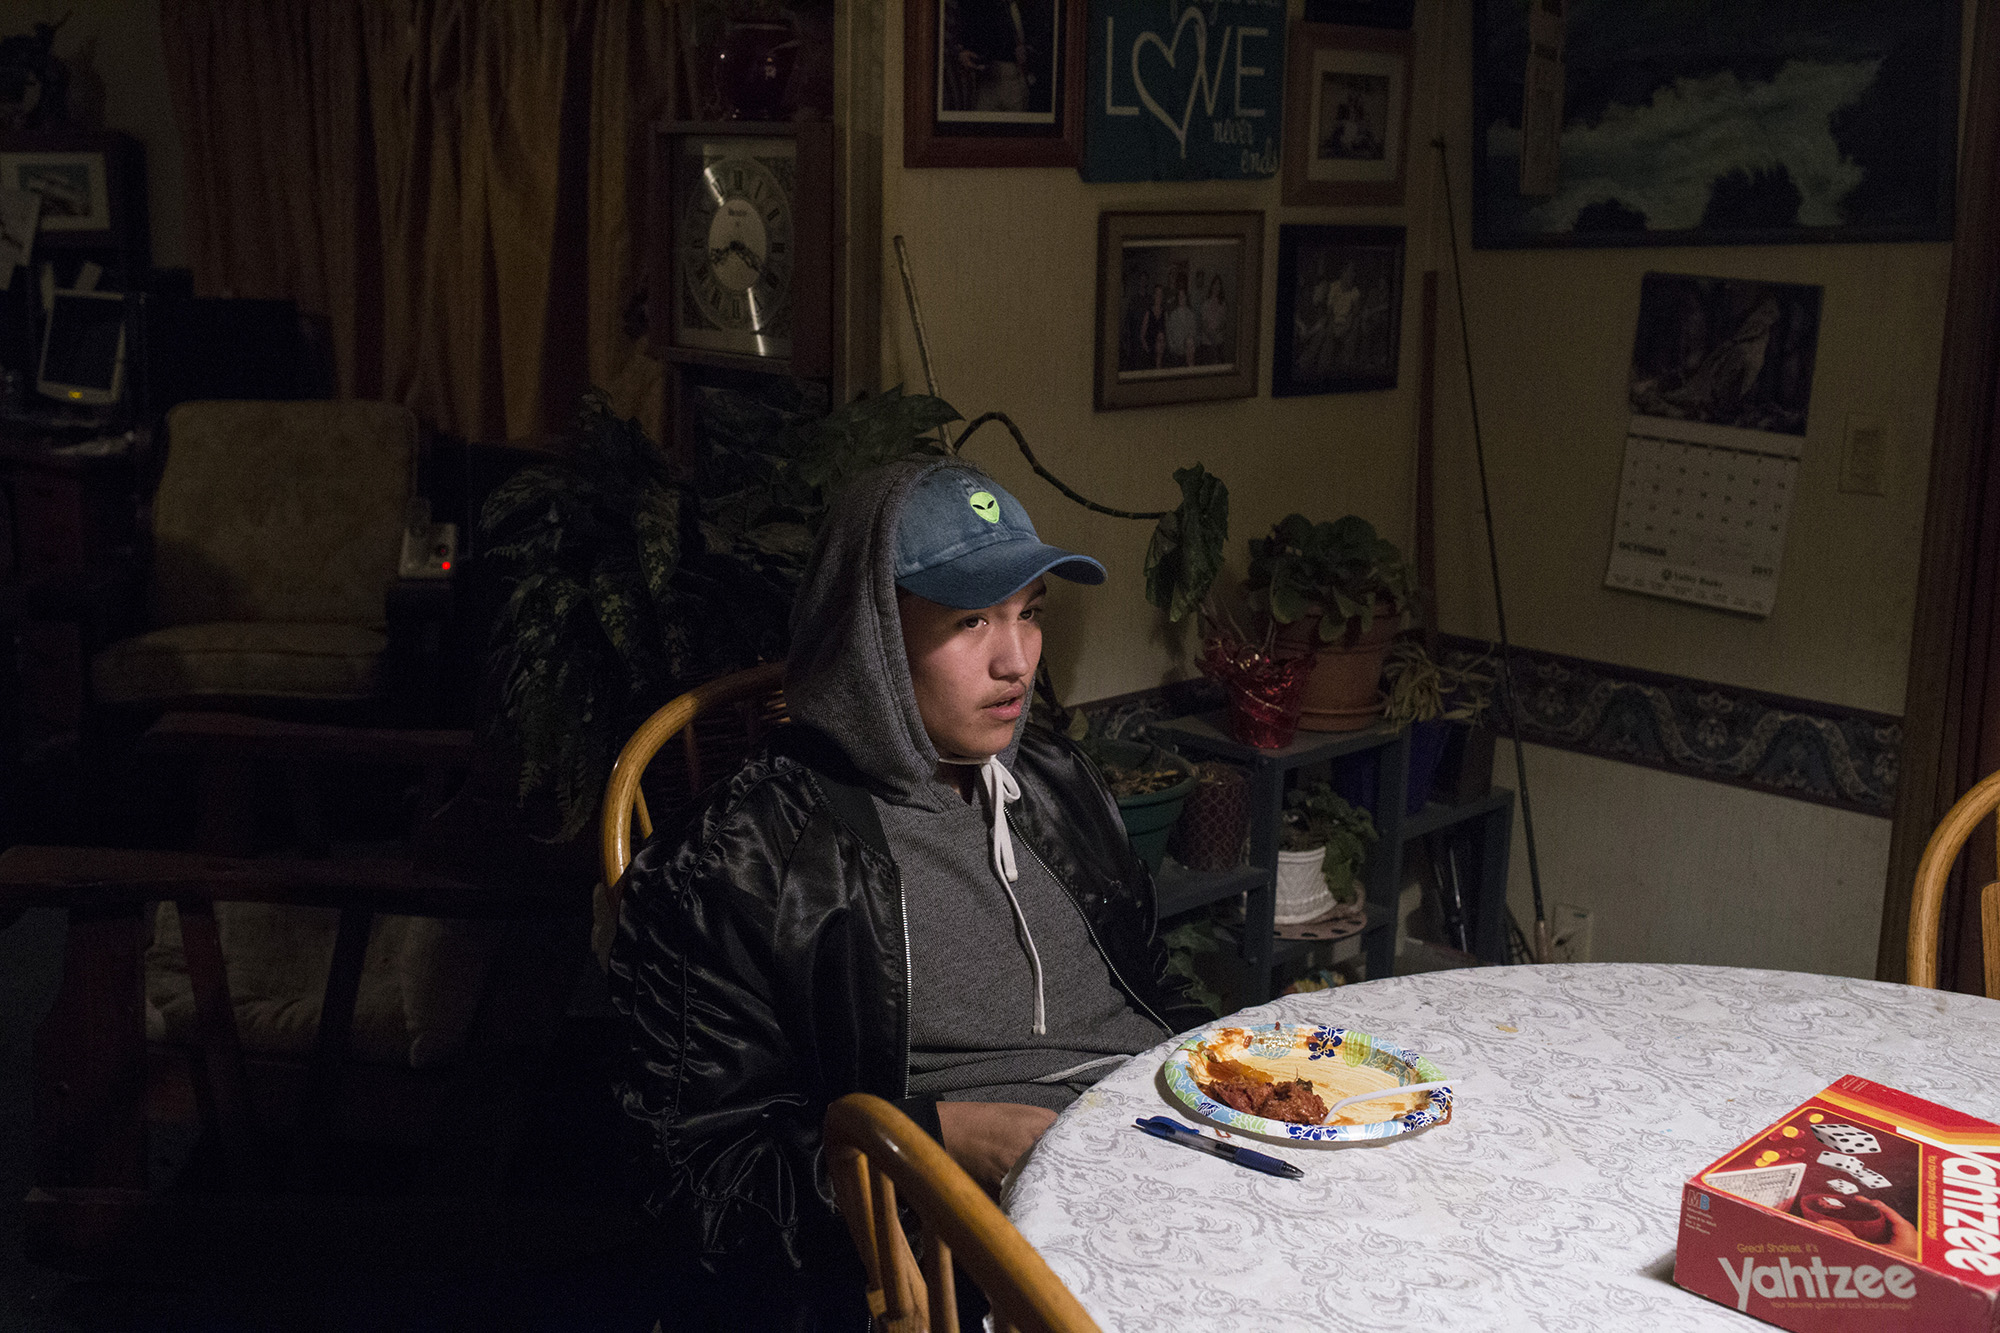 Xavier Smith, 17, who is Navajo and Filipino, sits at the kitchen table in his grandmothers home as his grandmother, mother, his mother's boyfriend enjoy a card game, in Pablo, Mont., on the Flathead Reservation on Saturday, October 21, 2017. (Brittany Greeson/GroundTruth)